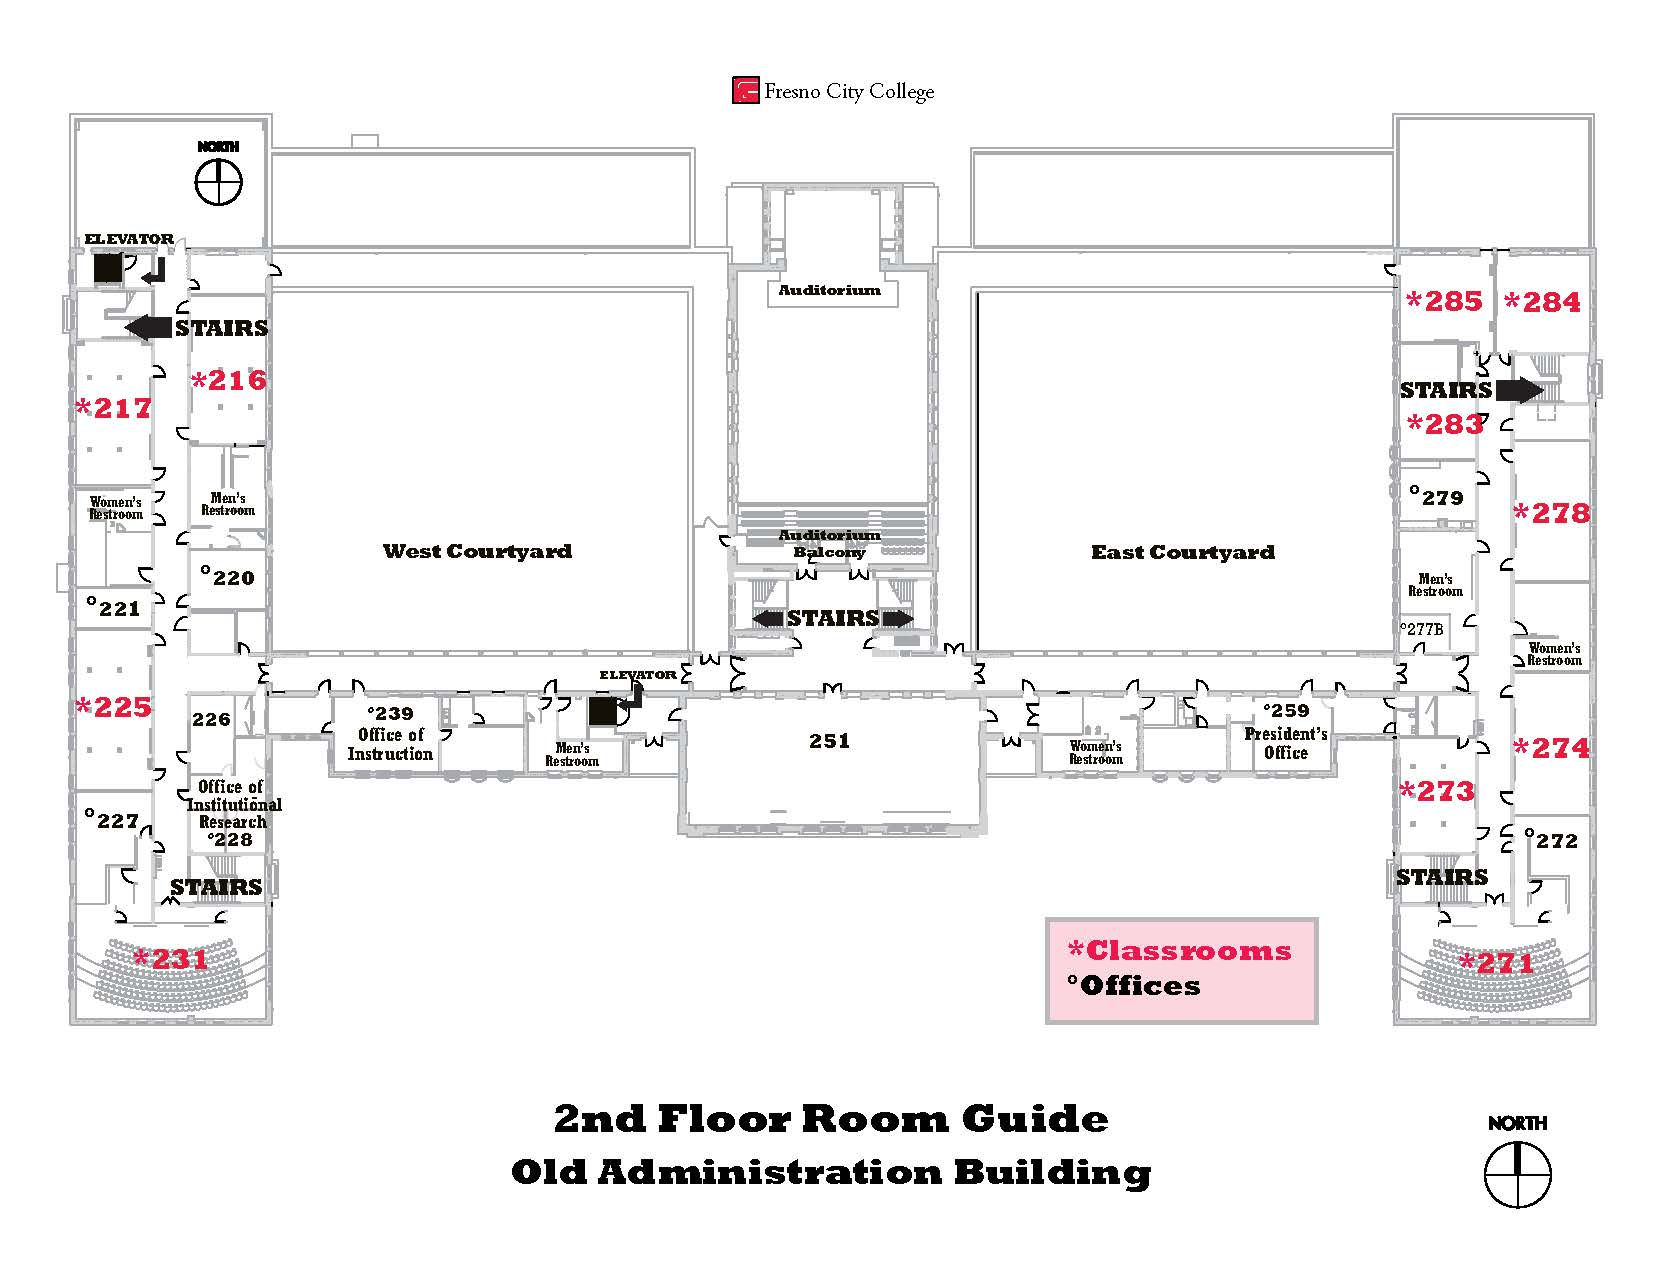 OAB second floor map